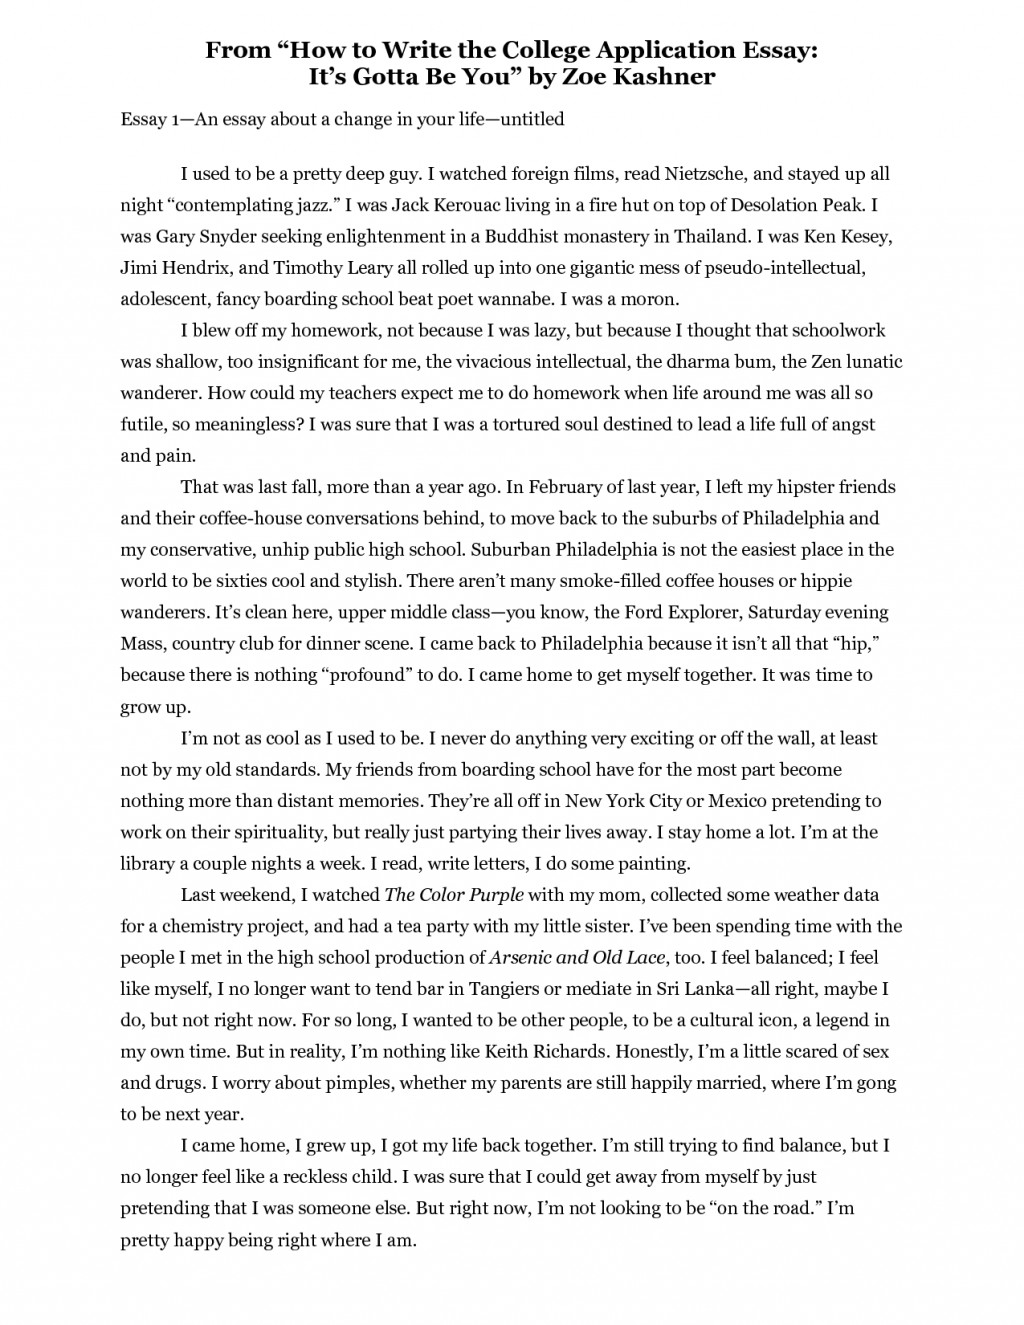 001 Essay Example Oyt5kbffja How To Write About Singular A Yourself Narrative Short Myself Paper Without Using I Large